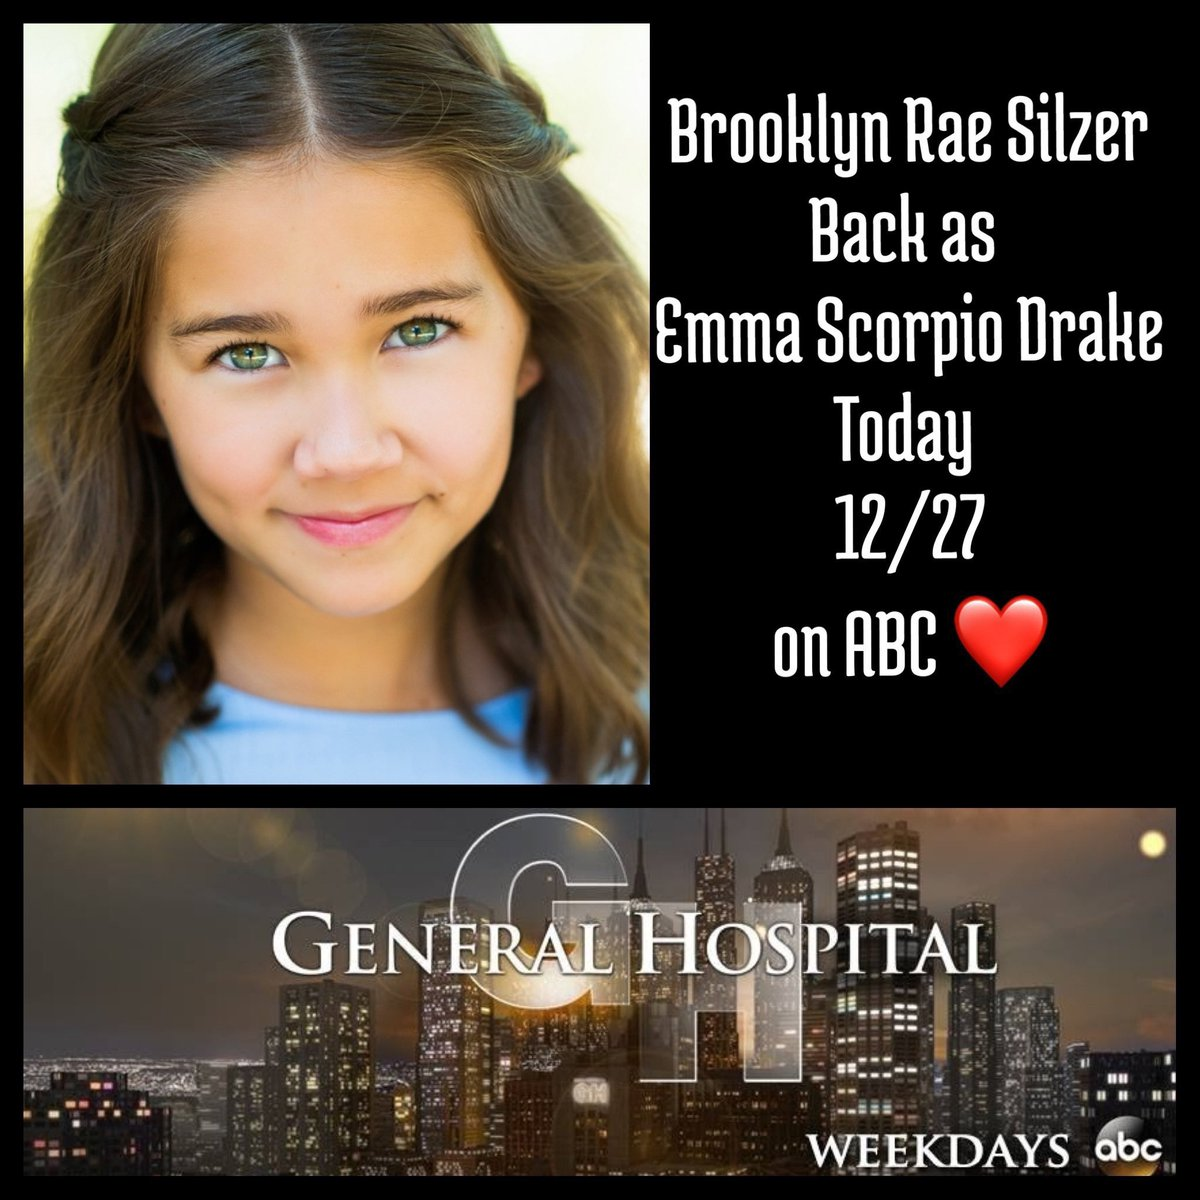 Hospital Brooklyn 22 1 Rae Silzer 14 General